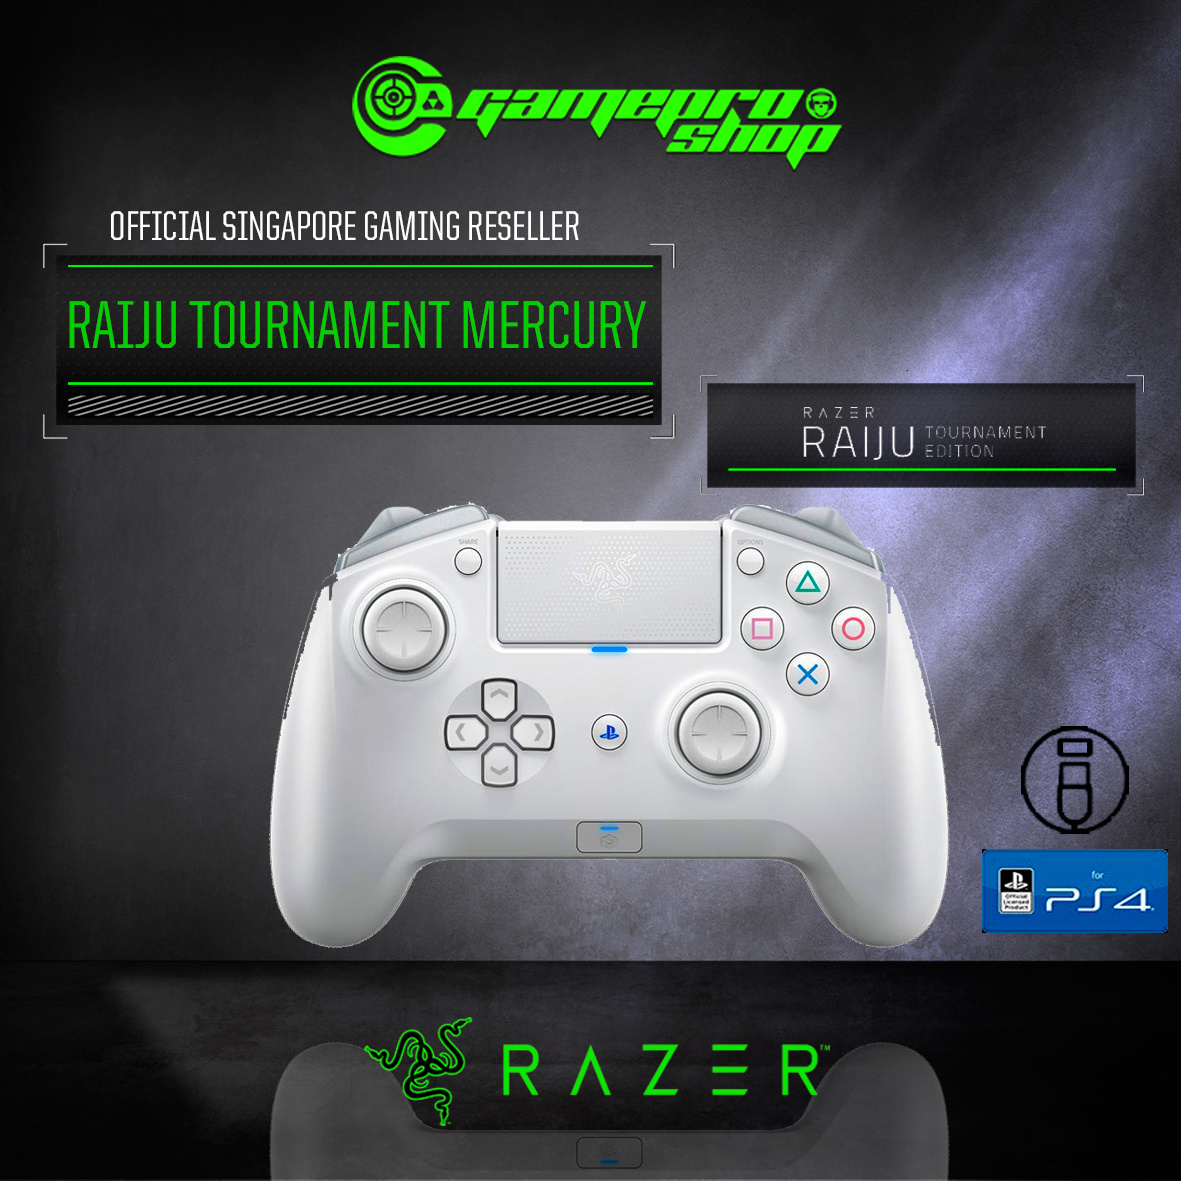 Qoo10 Razer Raiju Tournament Edition Wireless And Wired Gaming Controller Fo Computer Game Find pug puppies for sale with pictures from reputable pug breeders. qoo10